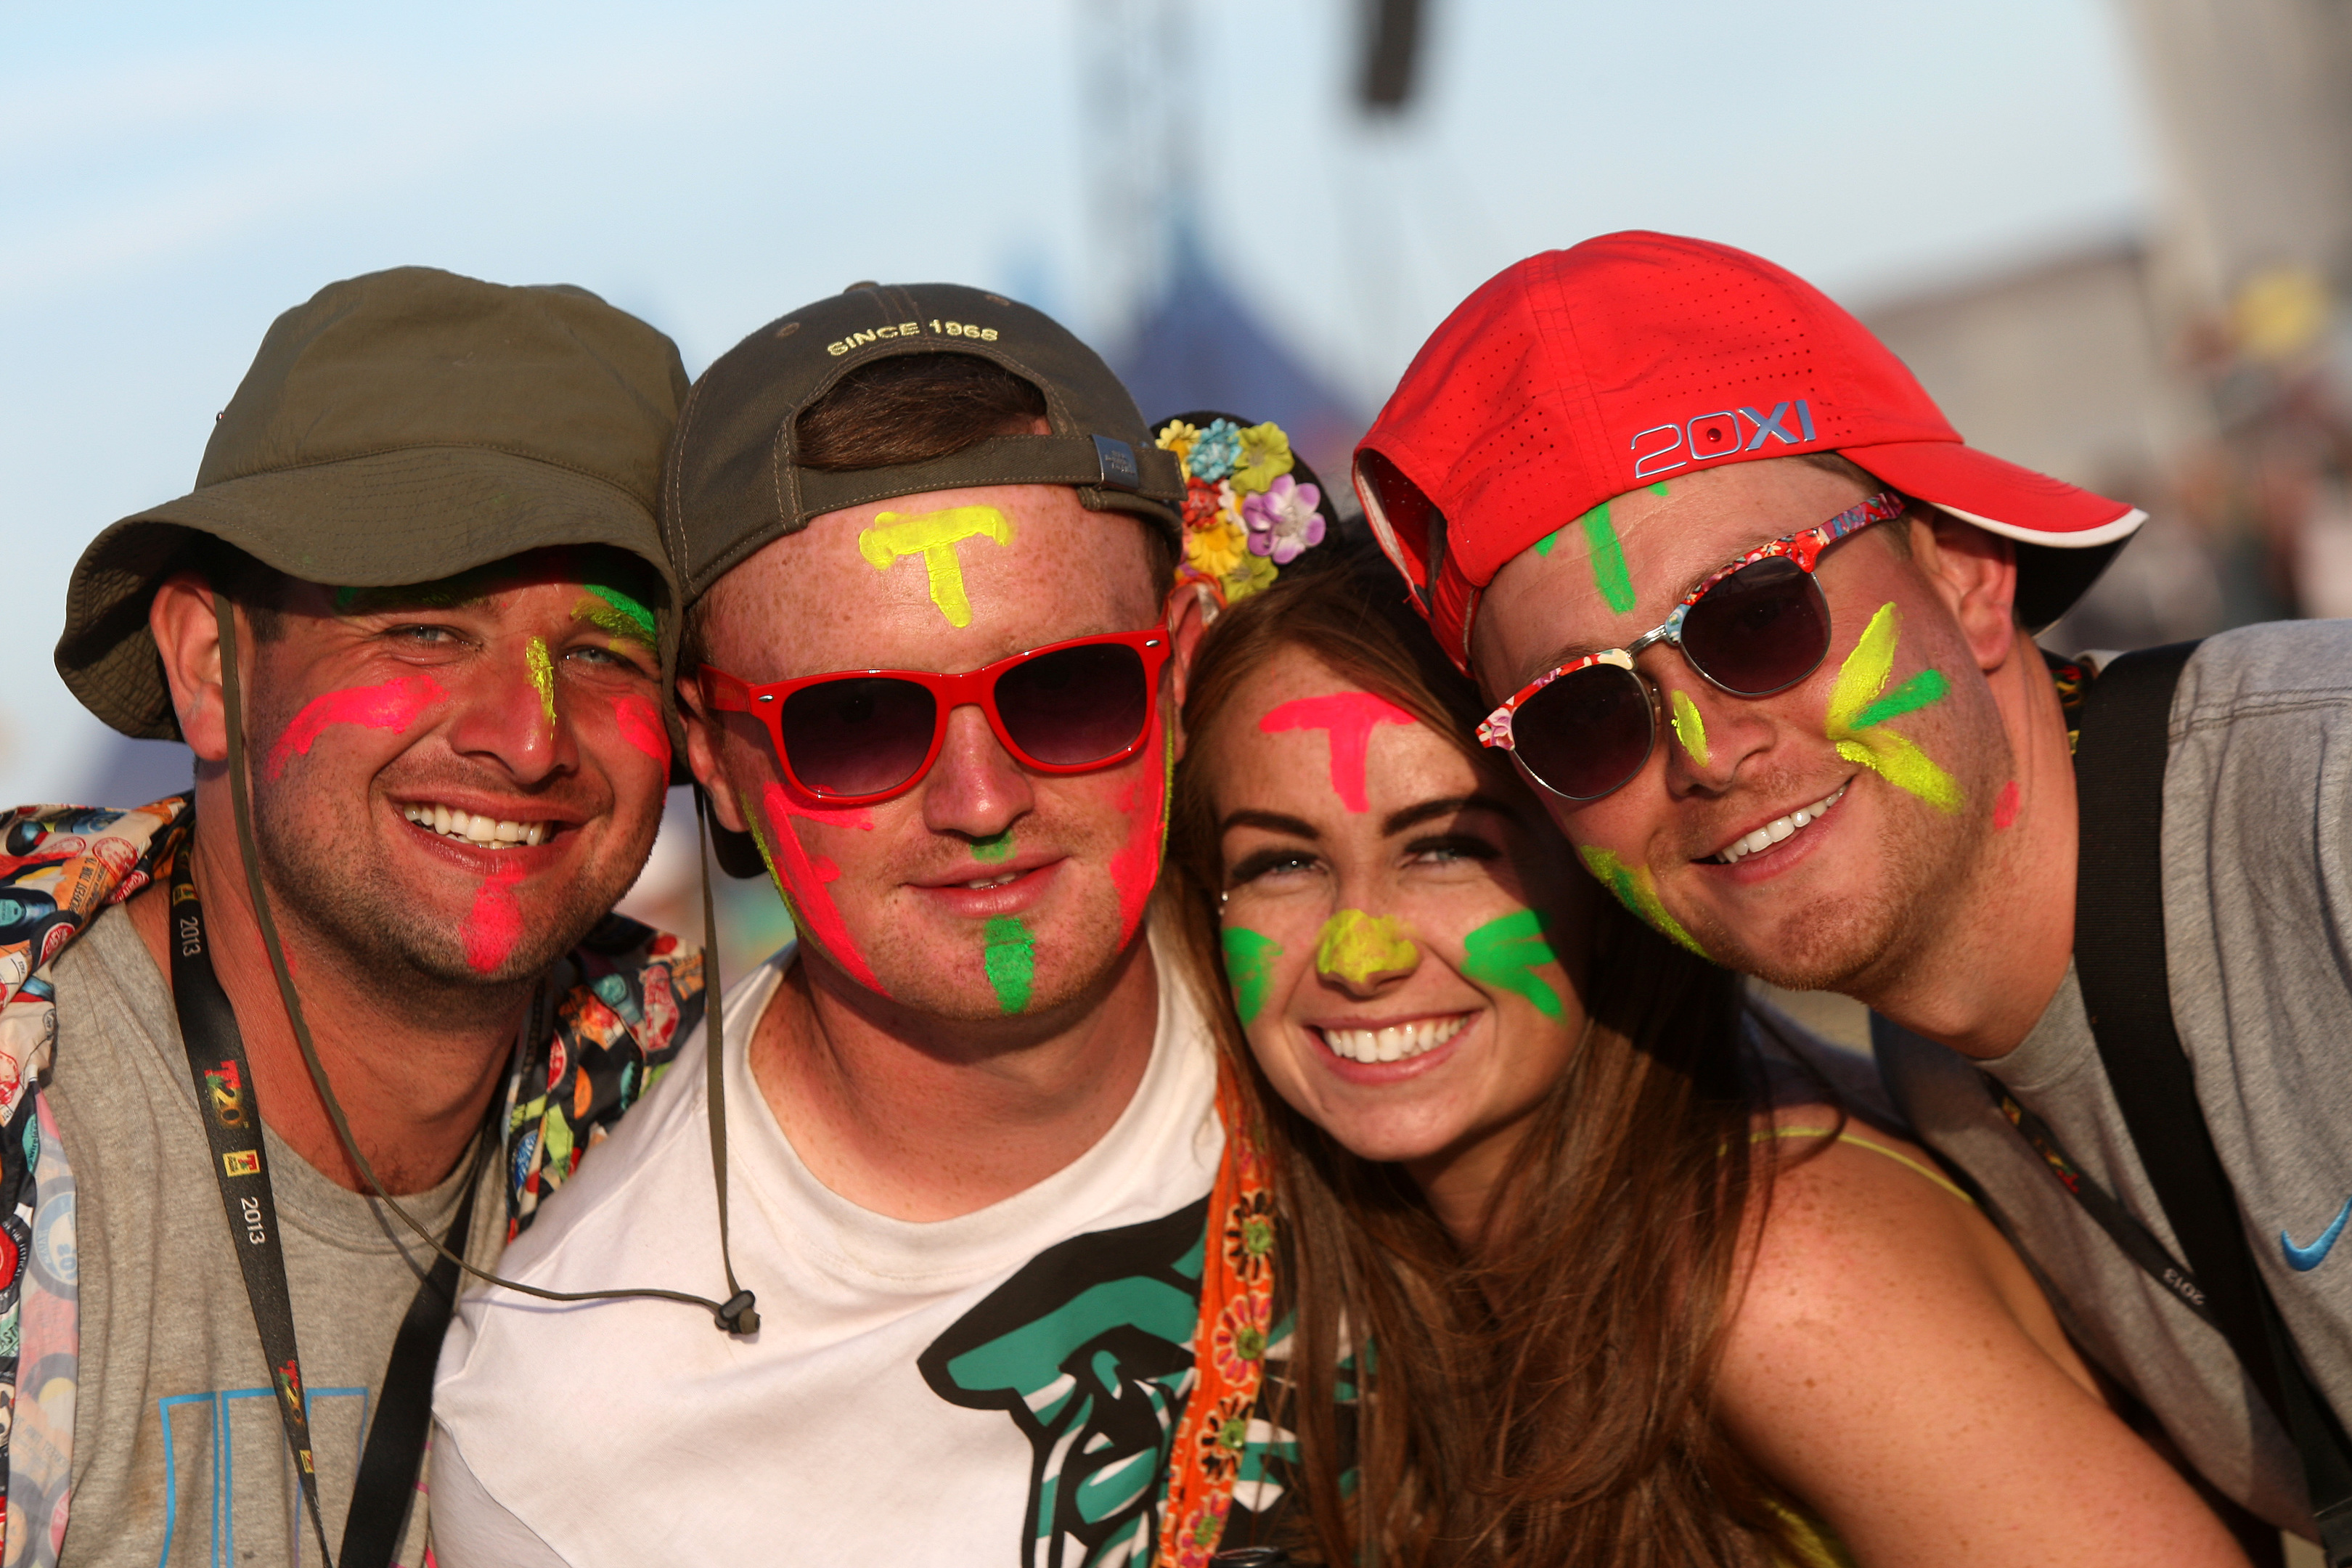 For all its recent problems, T in the Park was also the highlight of many music fans' year.